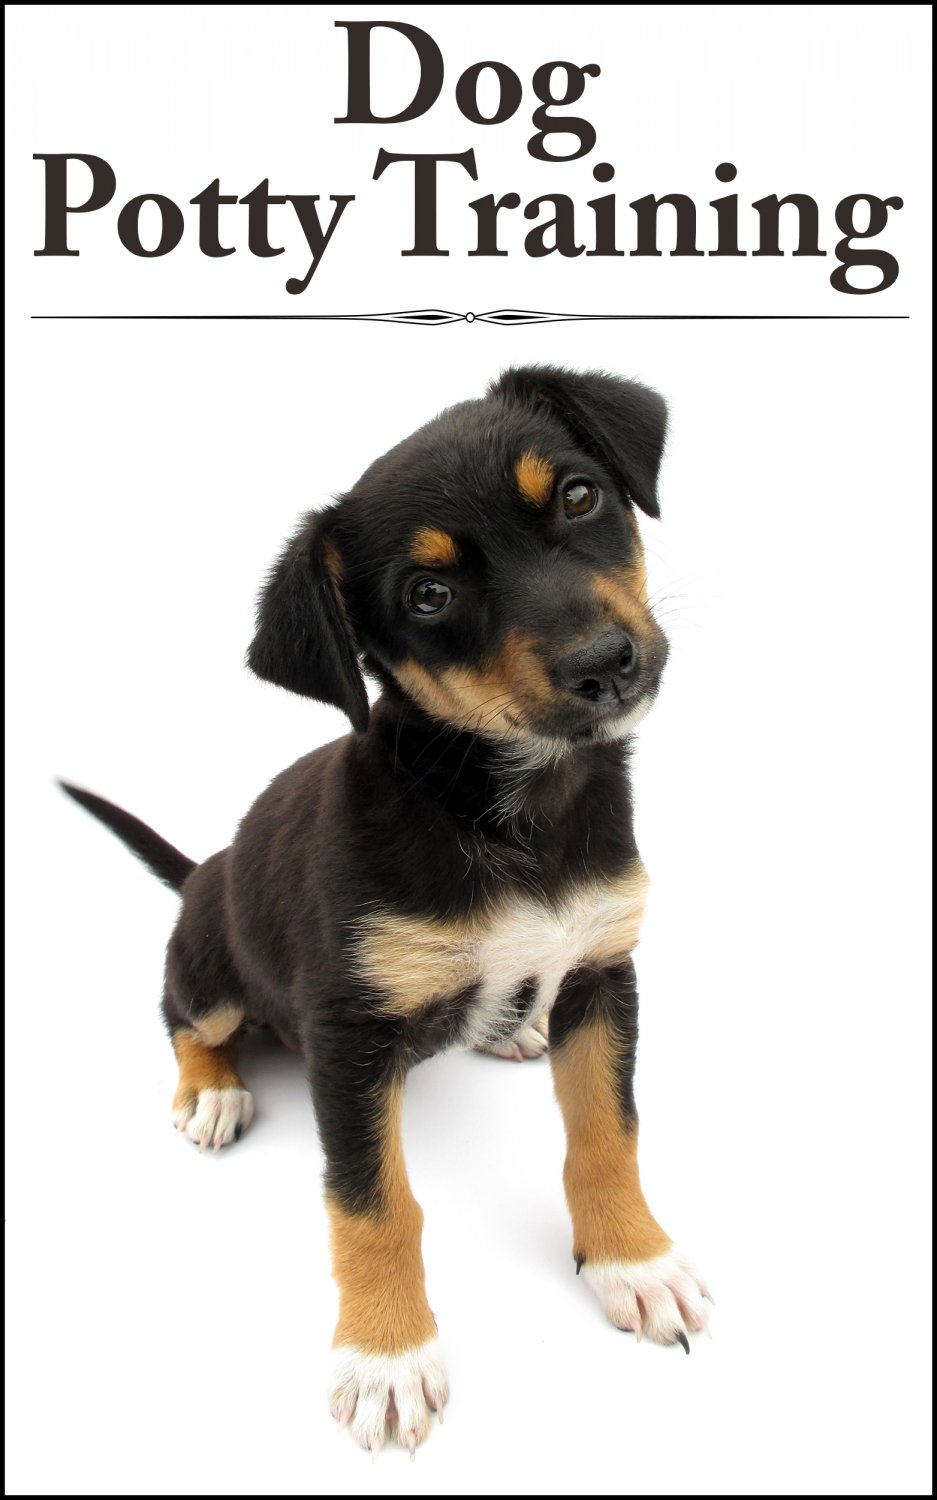 DOG POTTY TRAINING - Teaching Your Pup The Right Ways - eBook